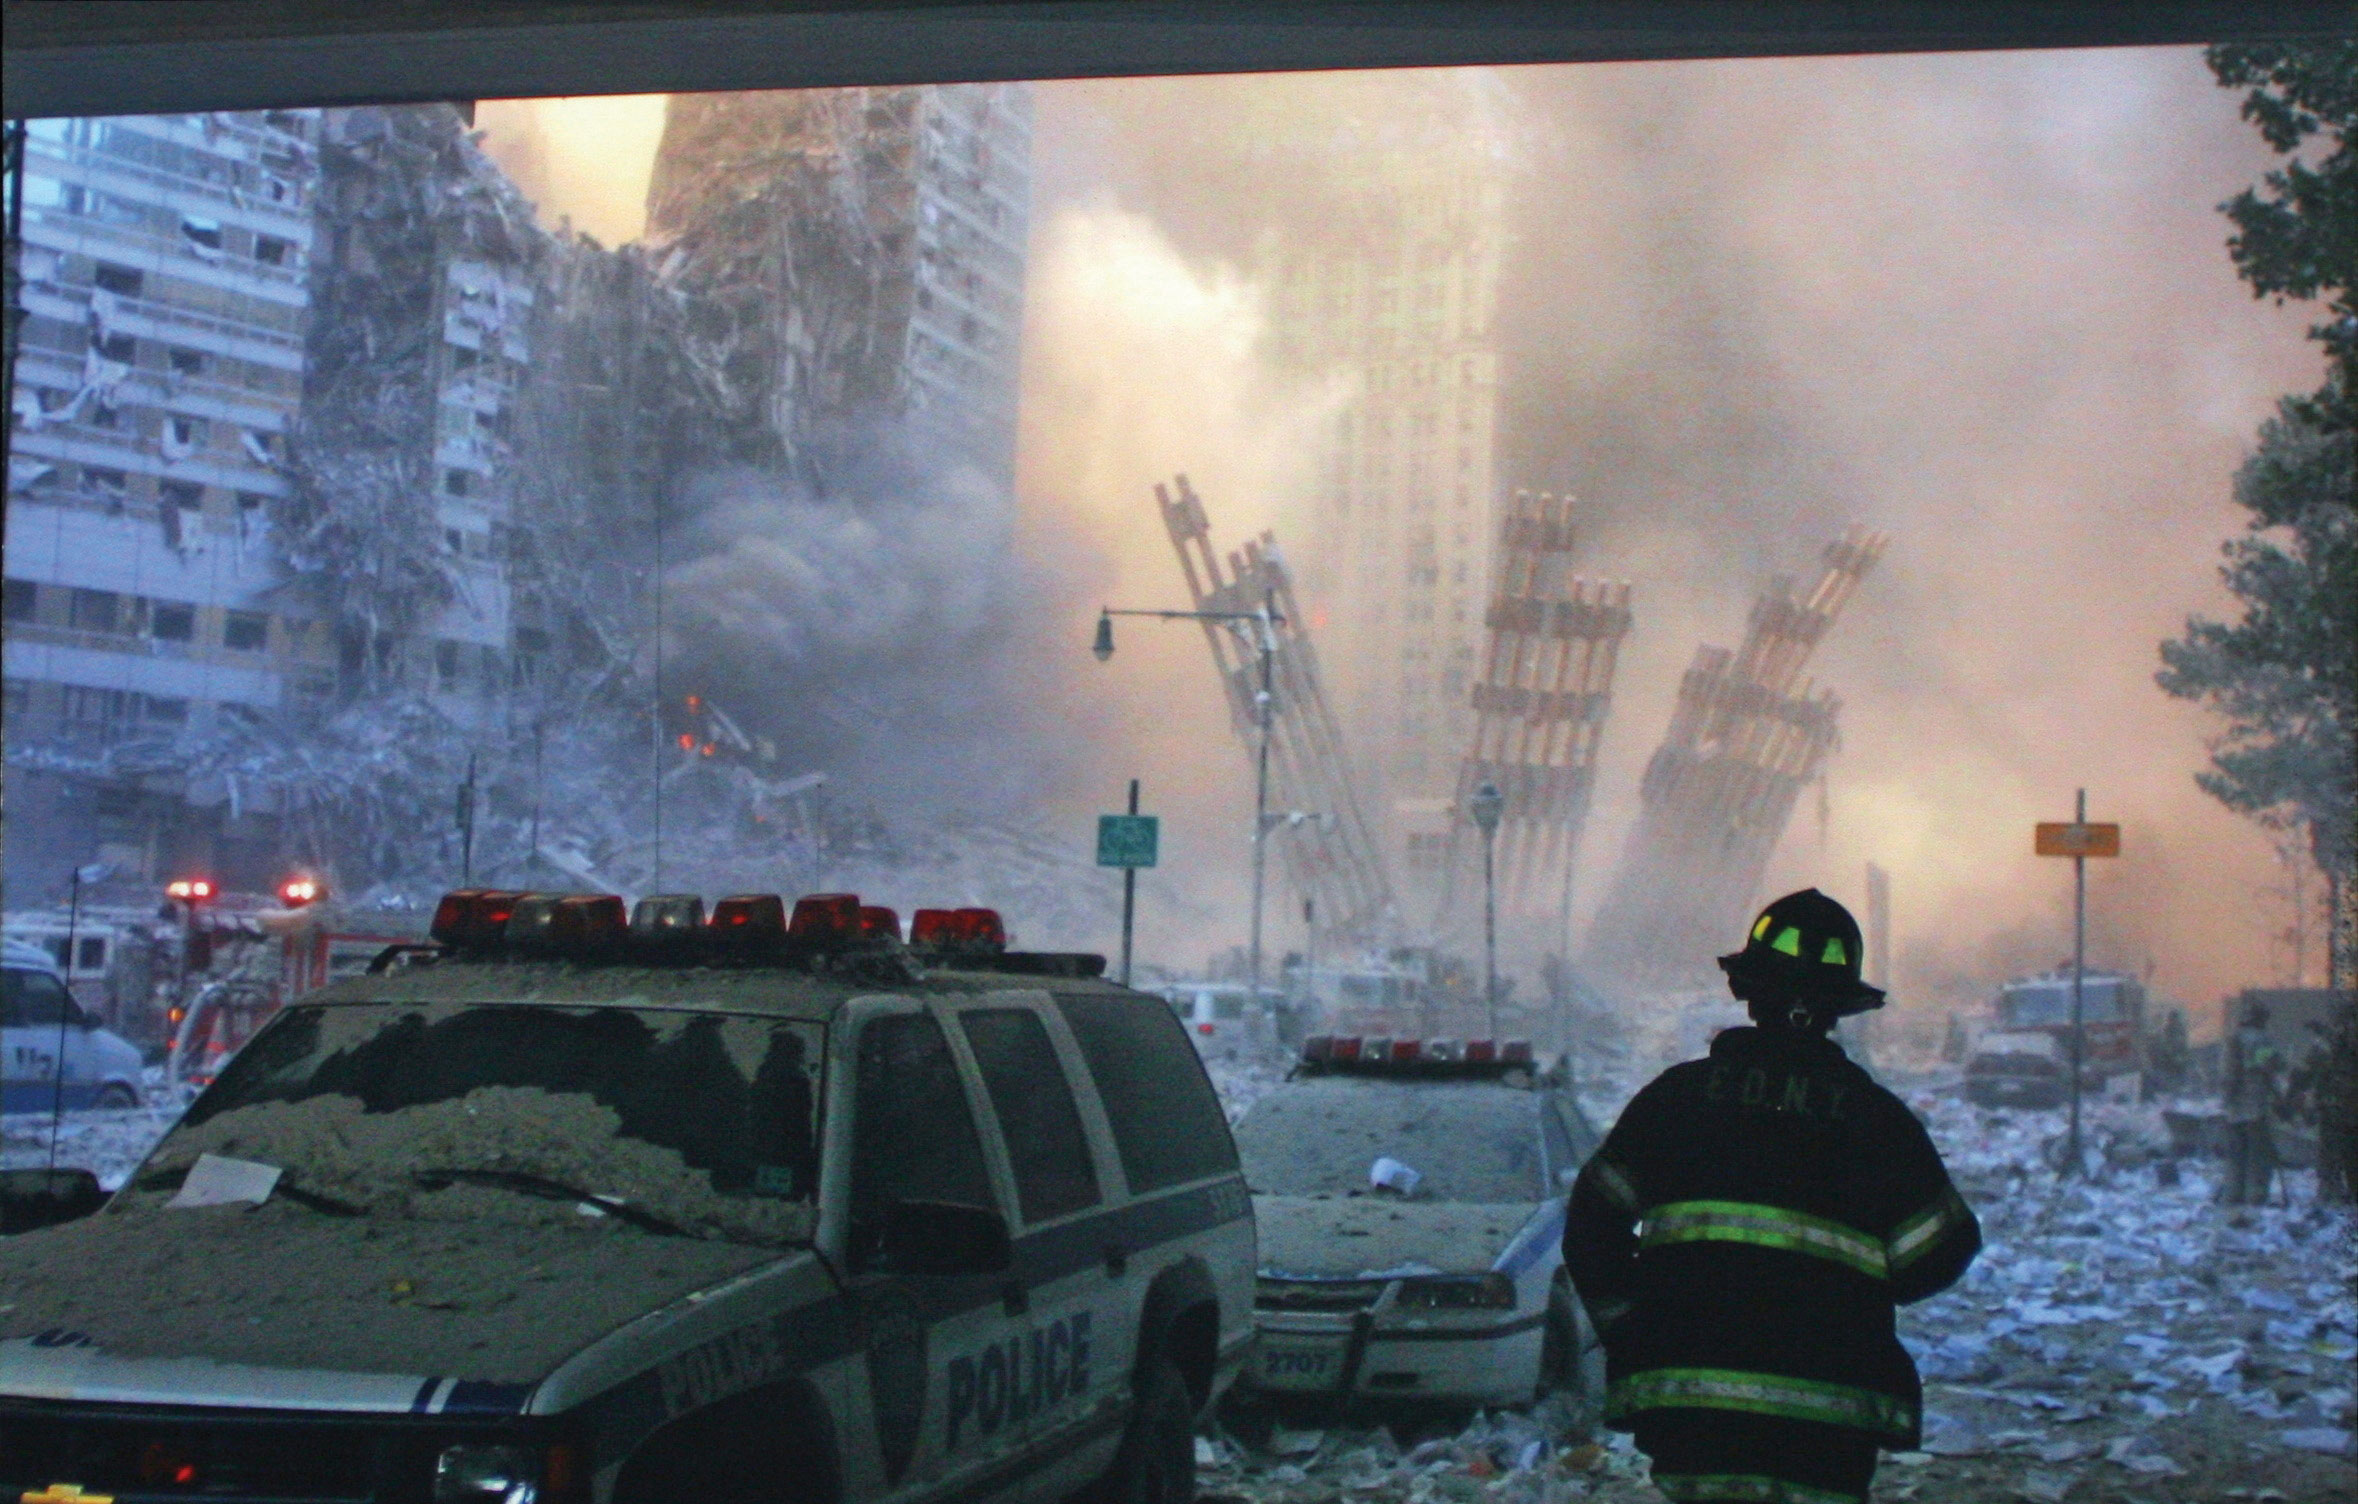 A firefighter standing in the remnants of the world trade center, after both towers collapsed